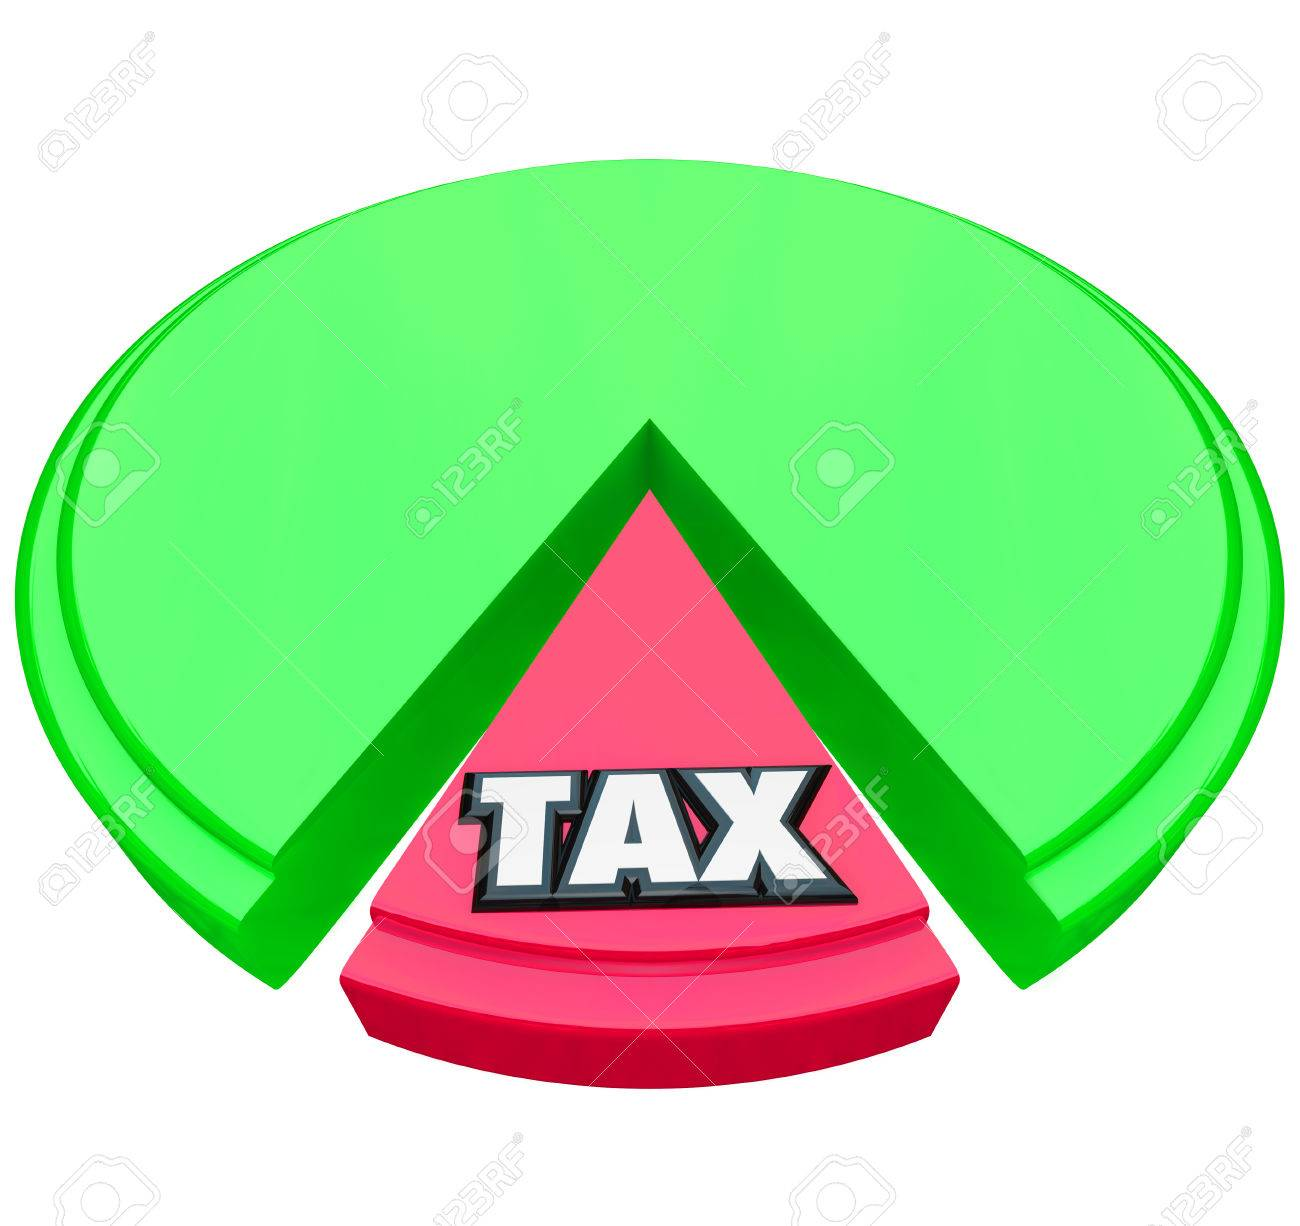 Tax word on a pie chart to illustrate the high percentage or tax word on a pie chart to illustrate the high percentage or share of income or nvjuhfo Gallery